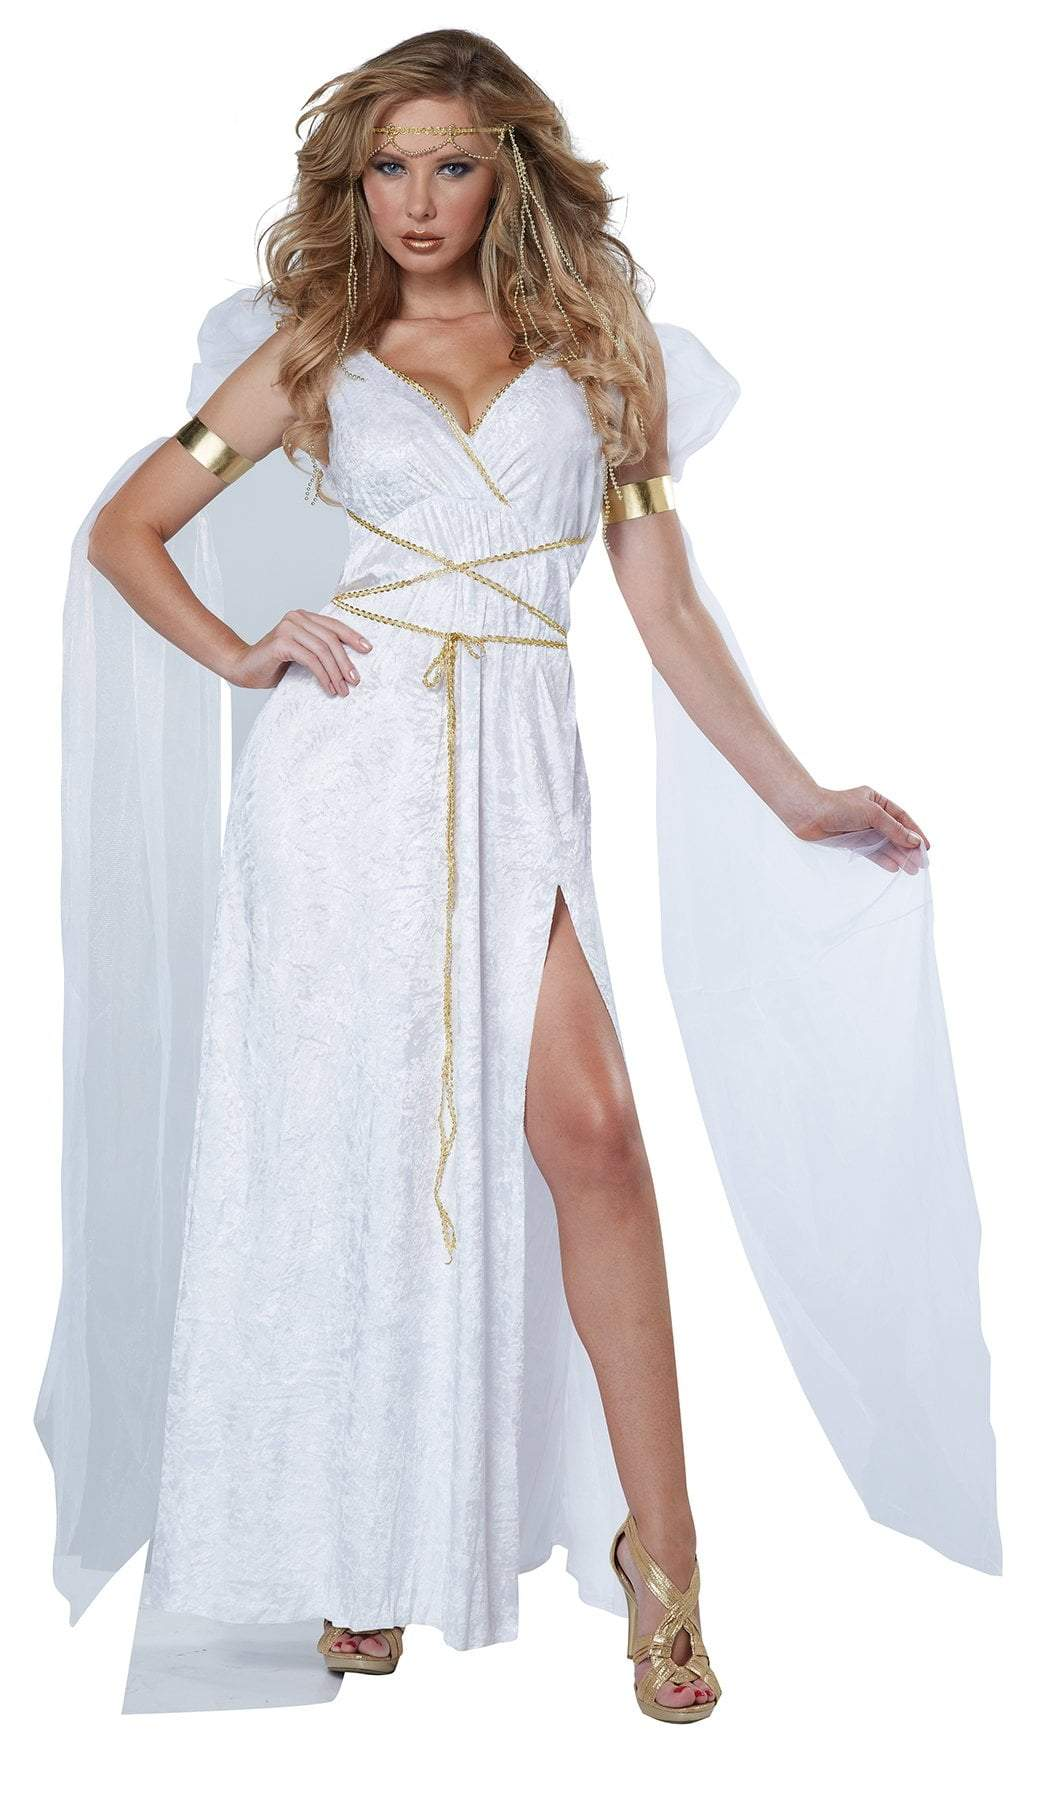 California Costumes Costumes WHITE / LARGE Adult Athenian Goddess Costume